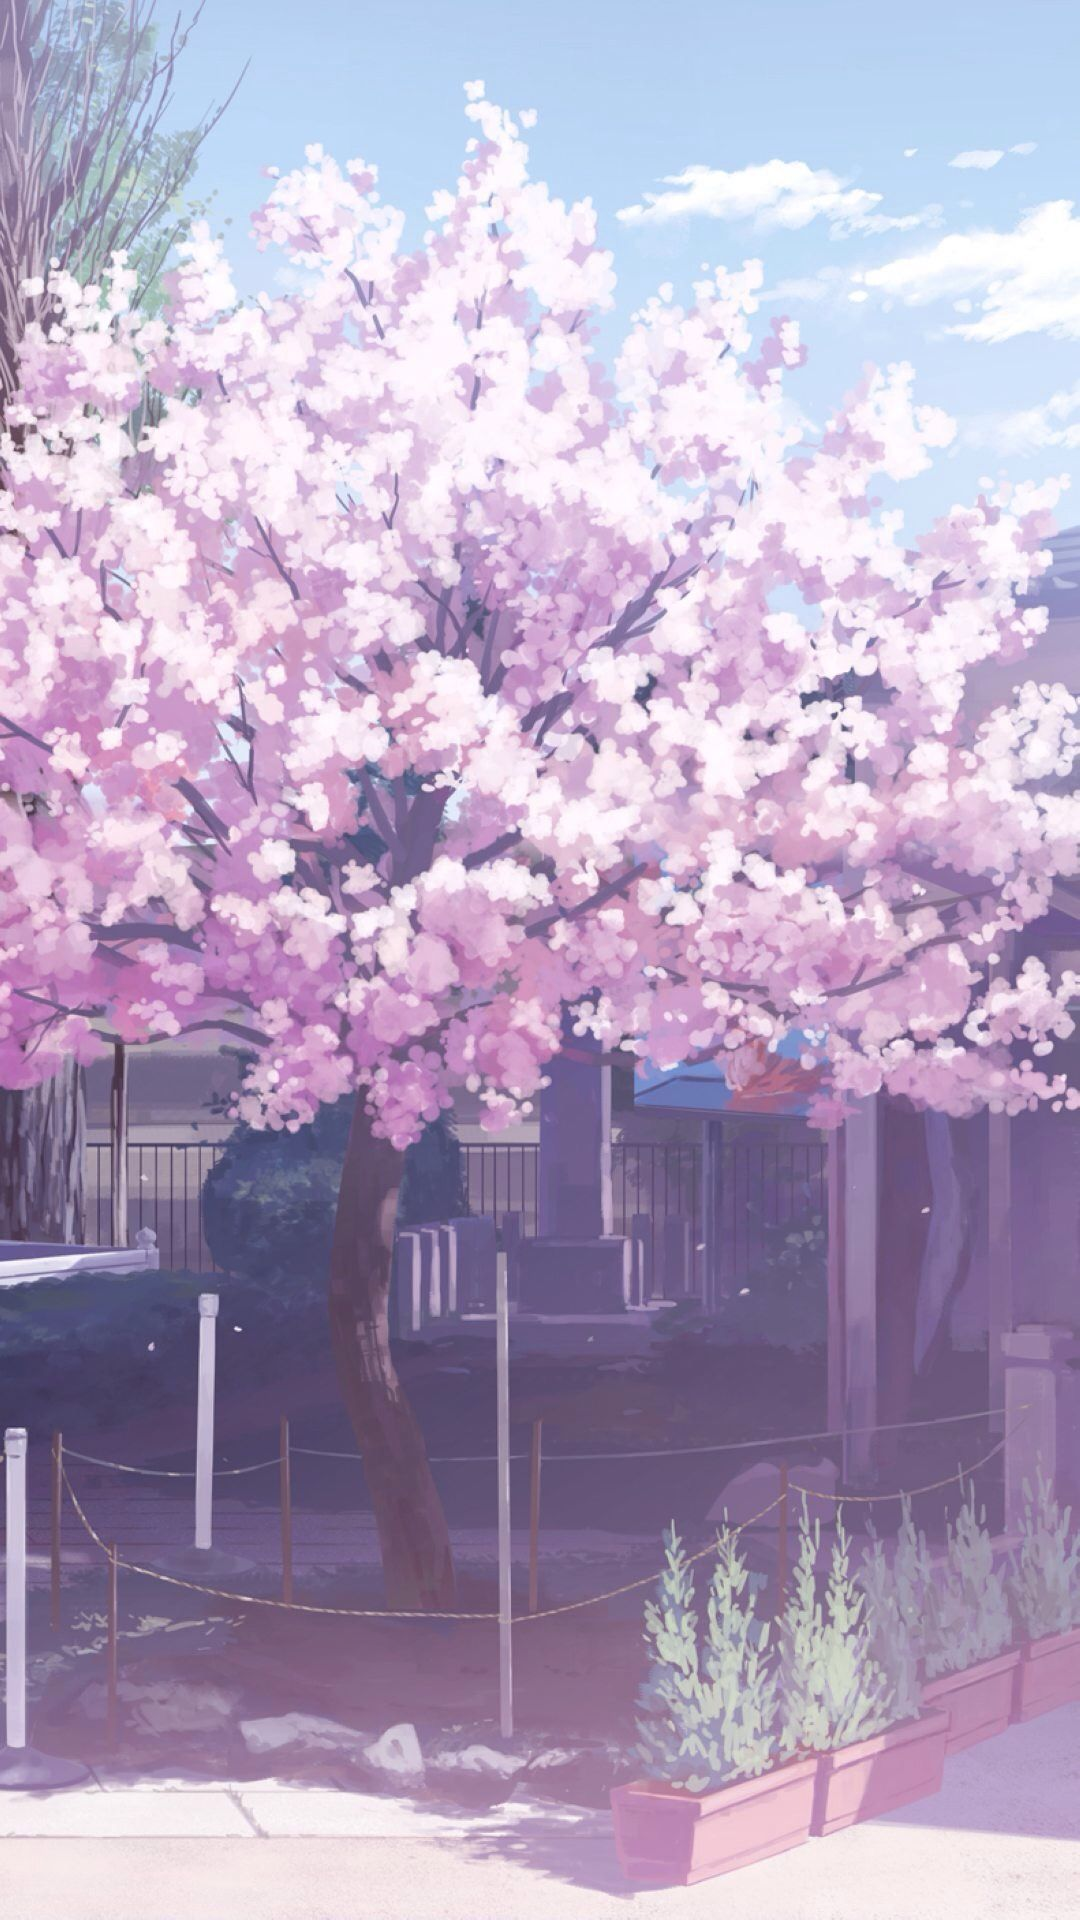 Cherry Blossom Wallpaper Cherry Blossom Wallpaper Beautiful Wallpapers Backgrounds Anime Cherry Blossom